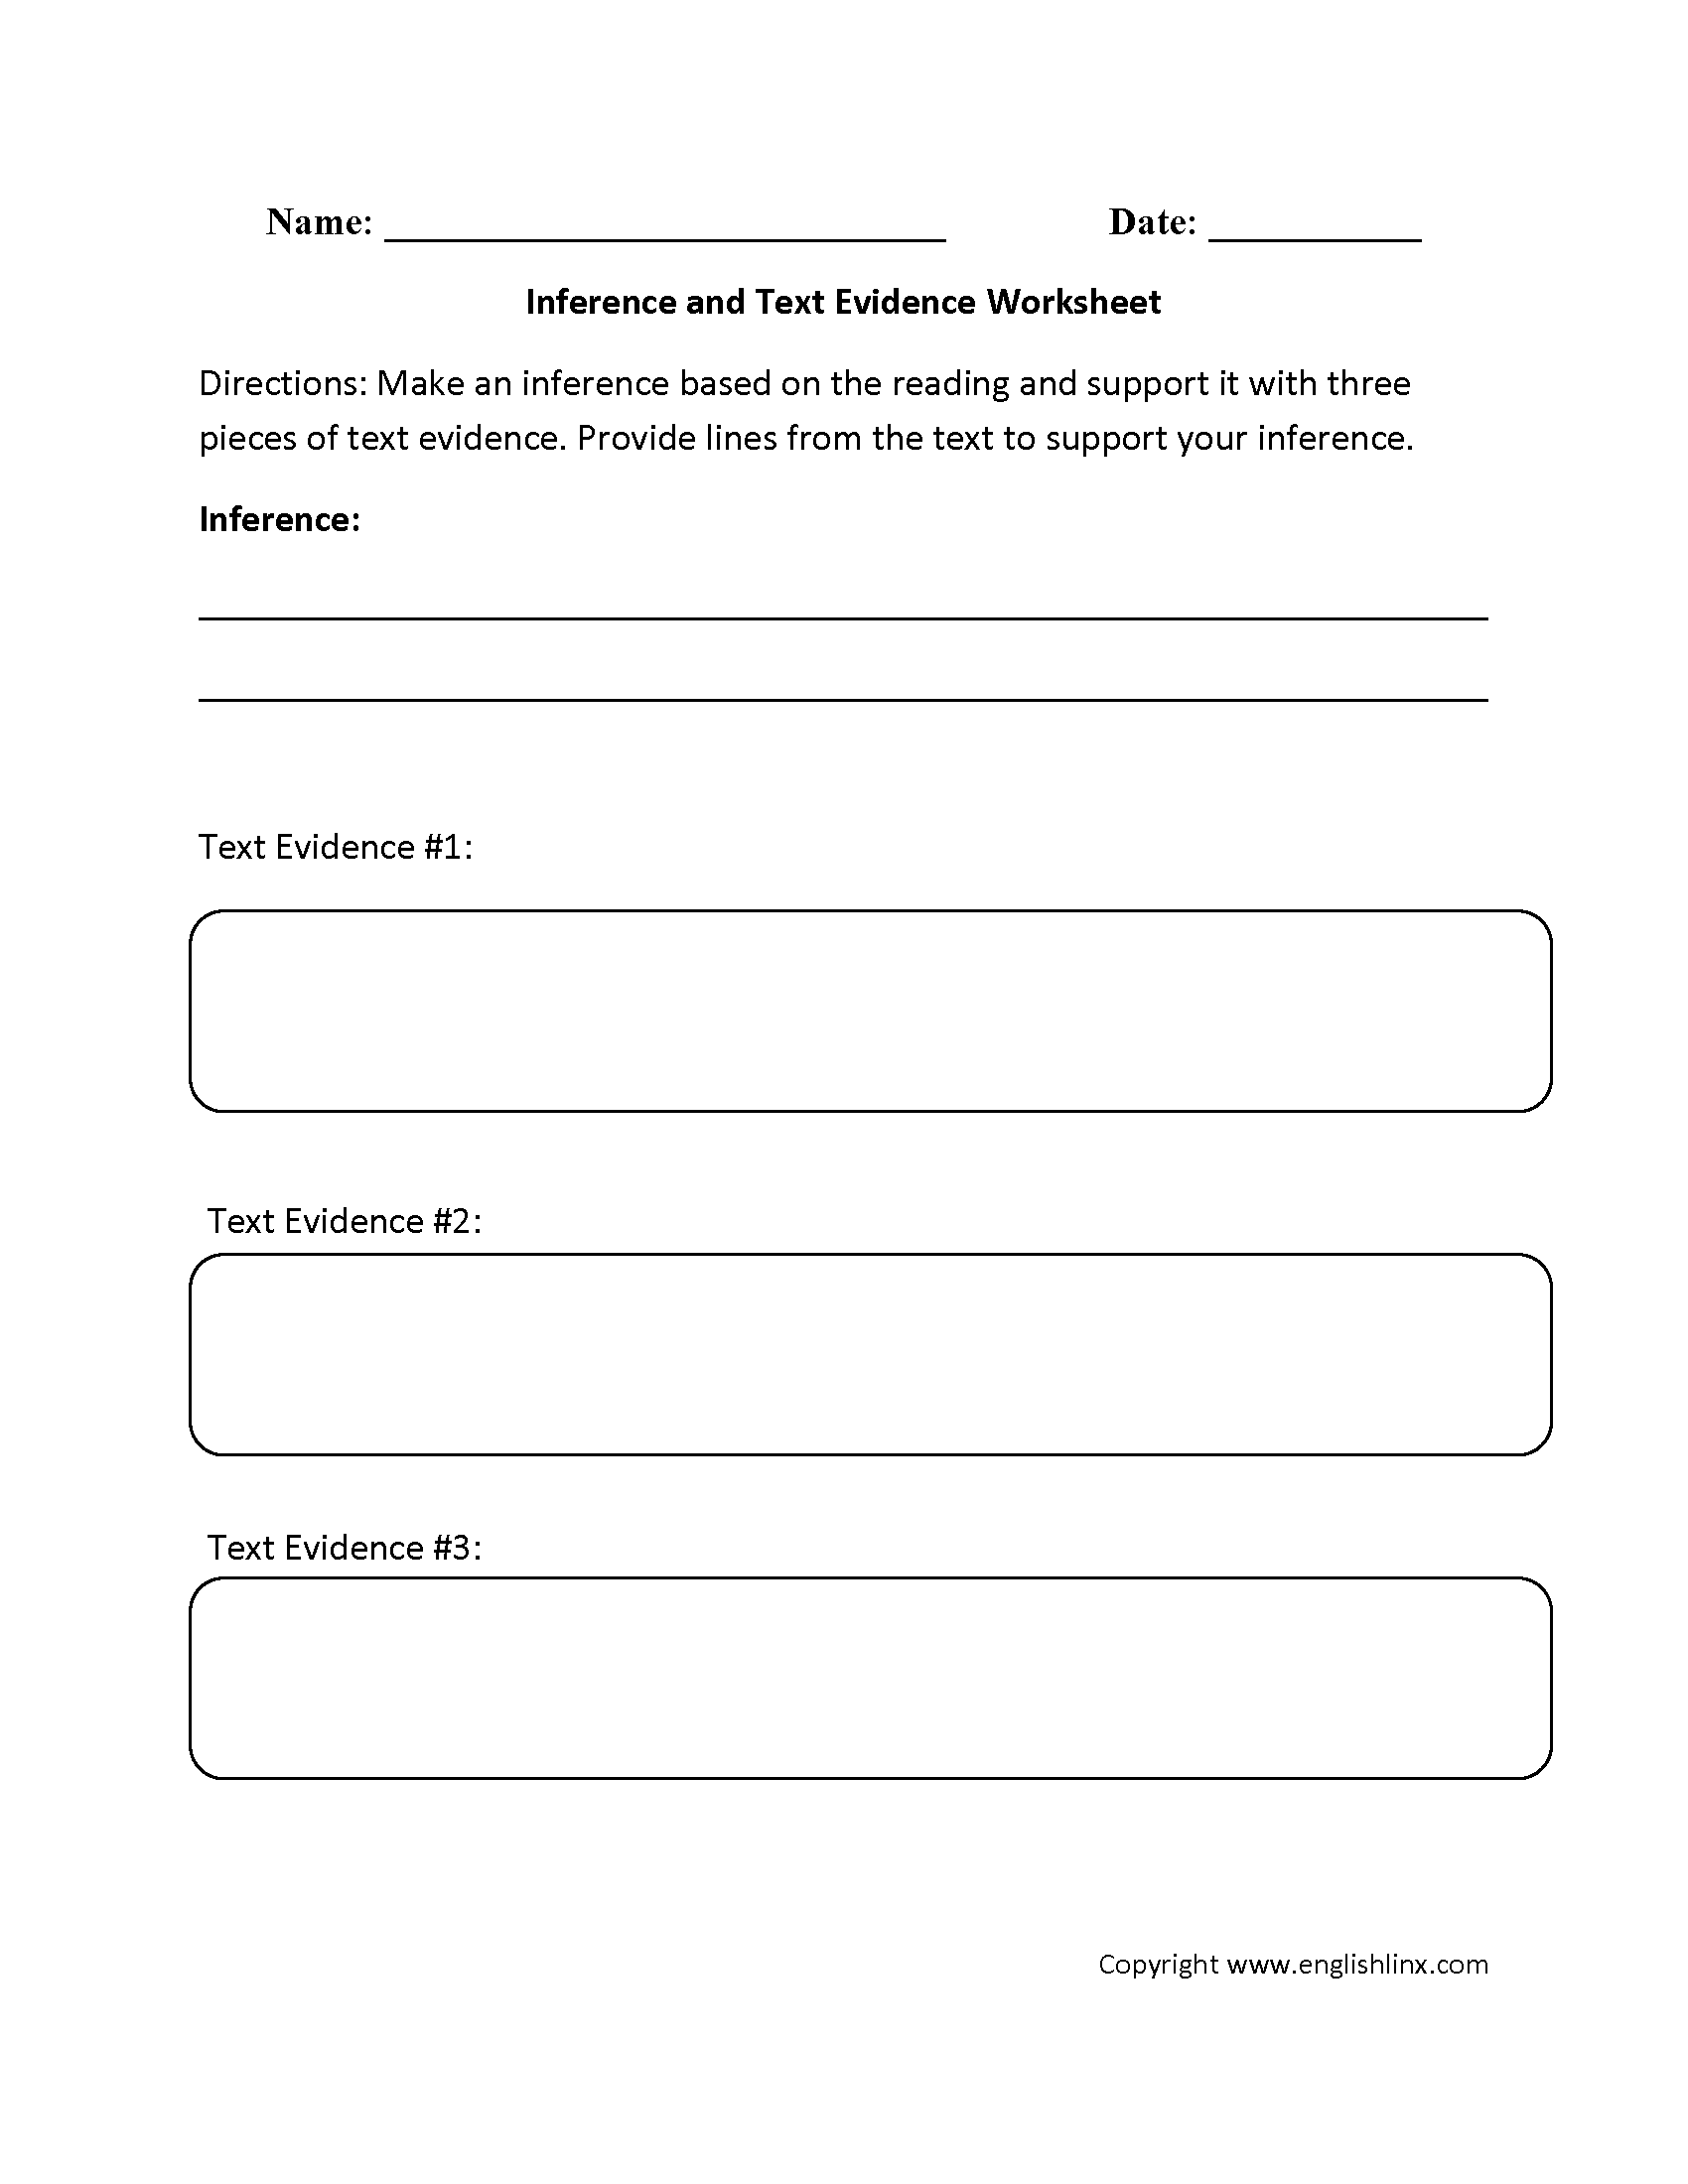 Free Worksheet Inference Worksheets For 5th Grade – Inferences Worksheet 2